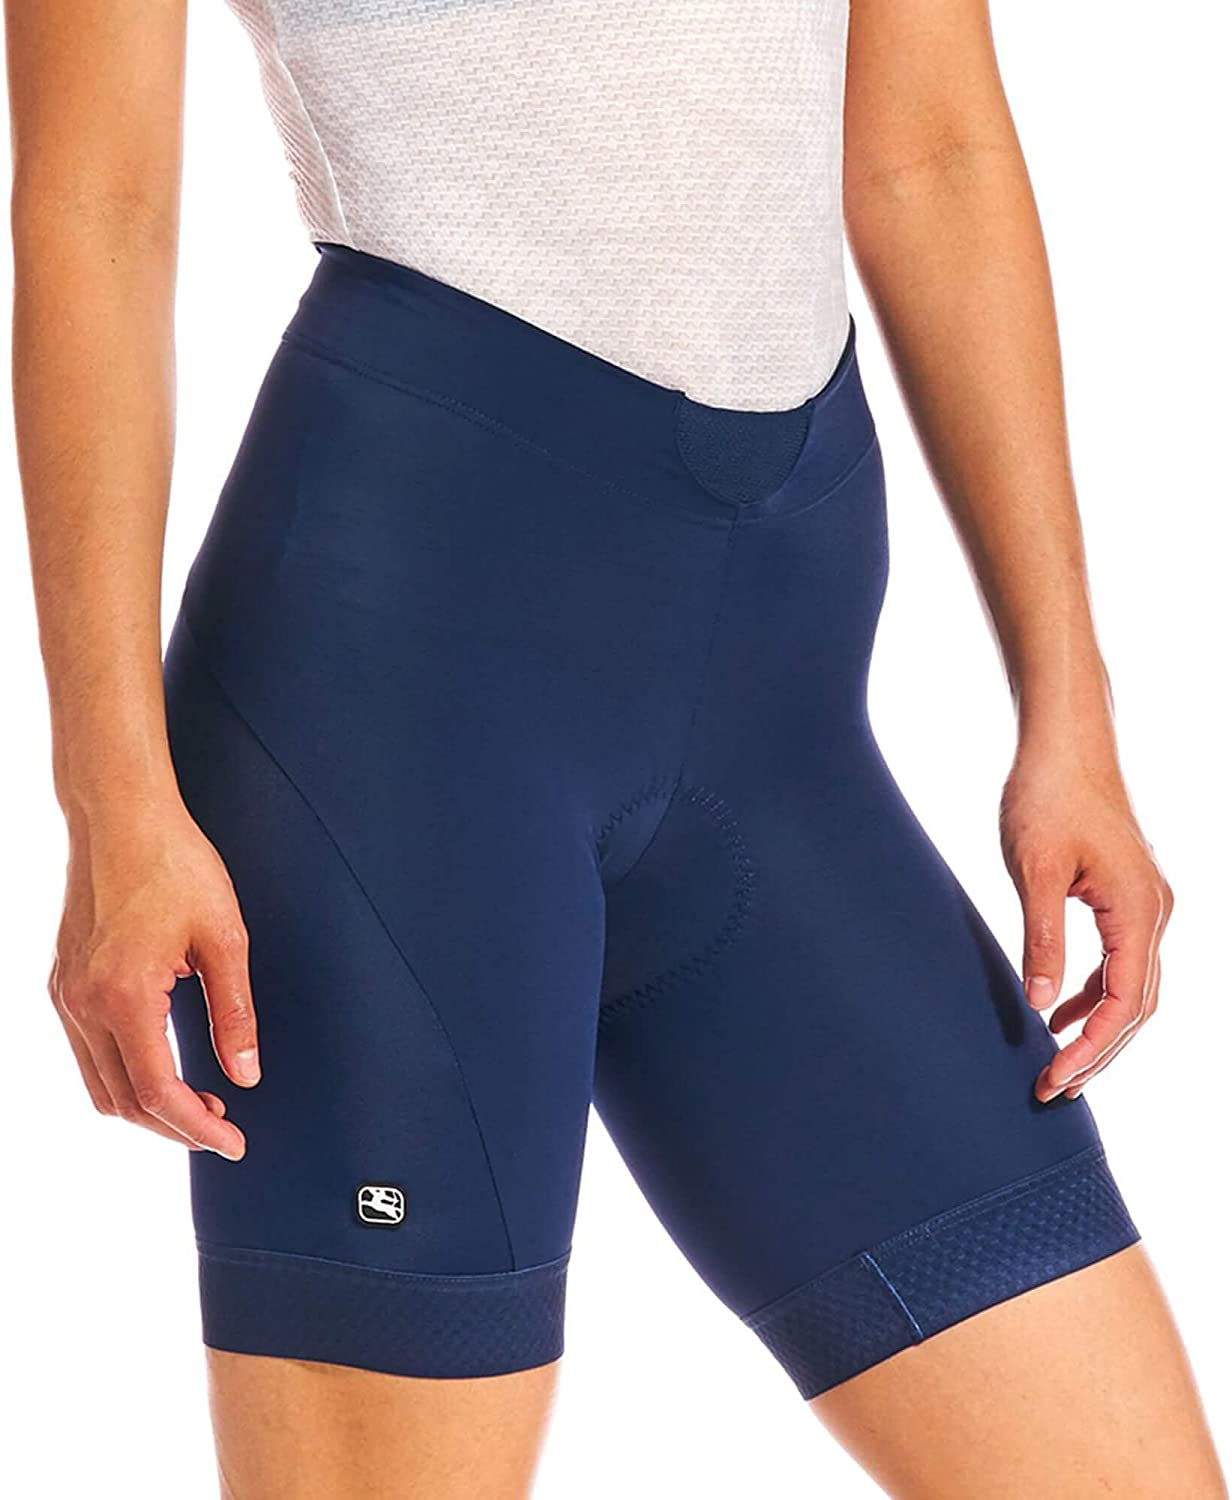 Giordana SilverLine Women's Discount mail order Cycling Shorts In a popularity